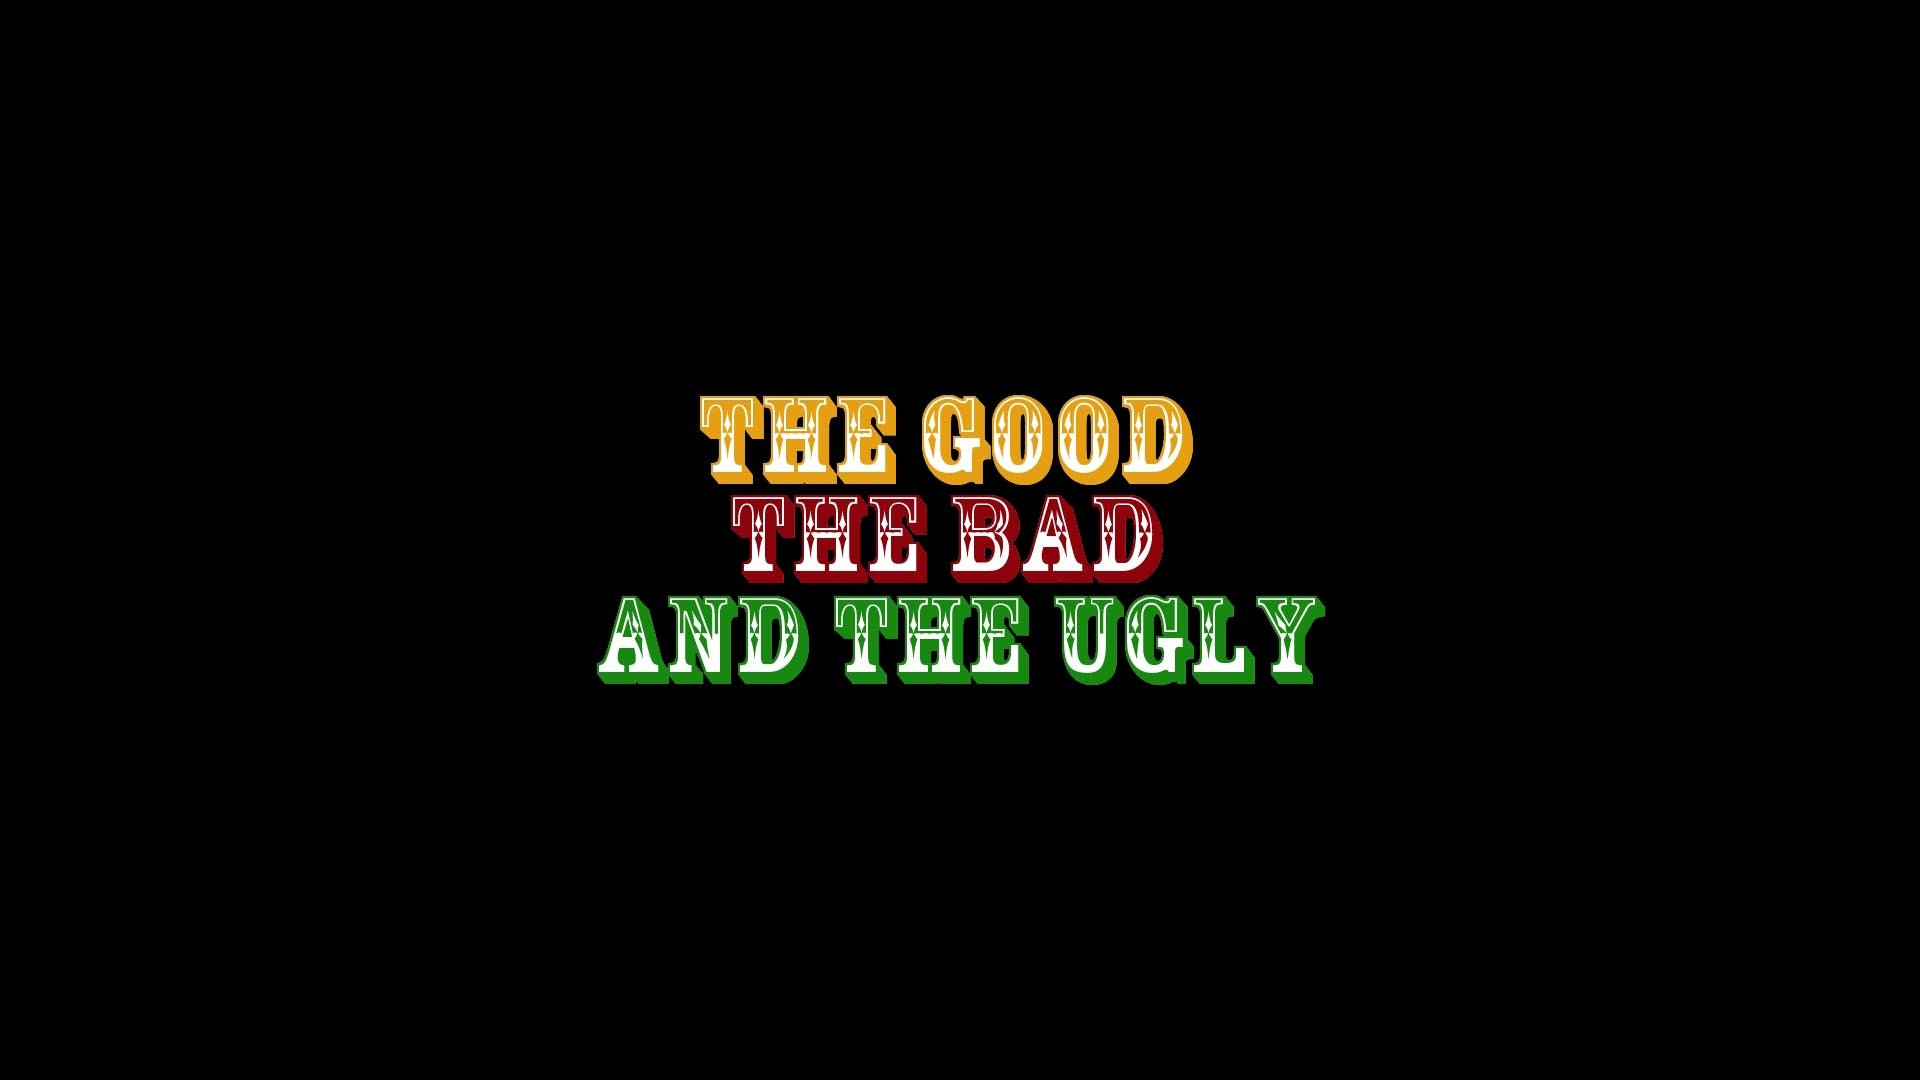 The good the bad and the ugly sheet music for violin, viola, cello.